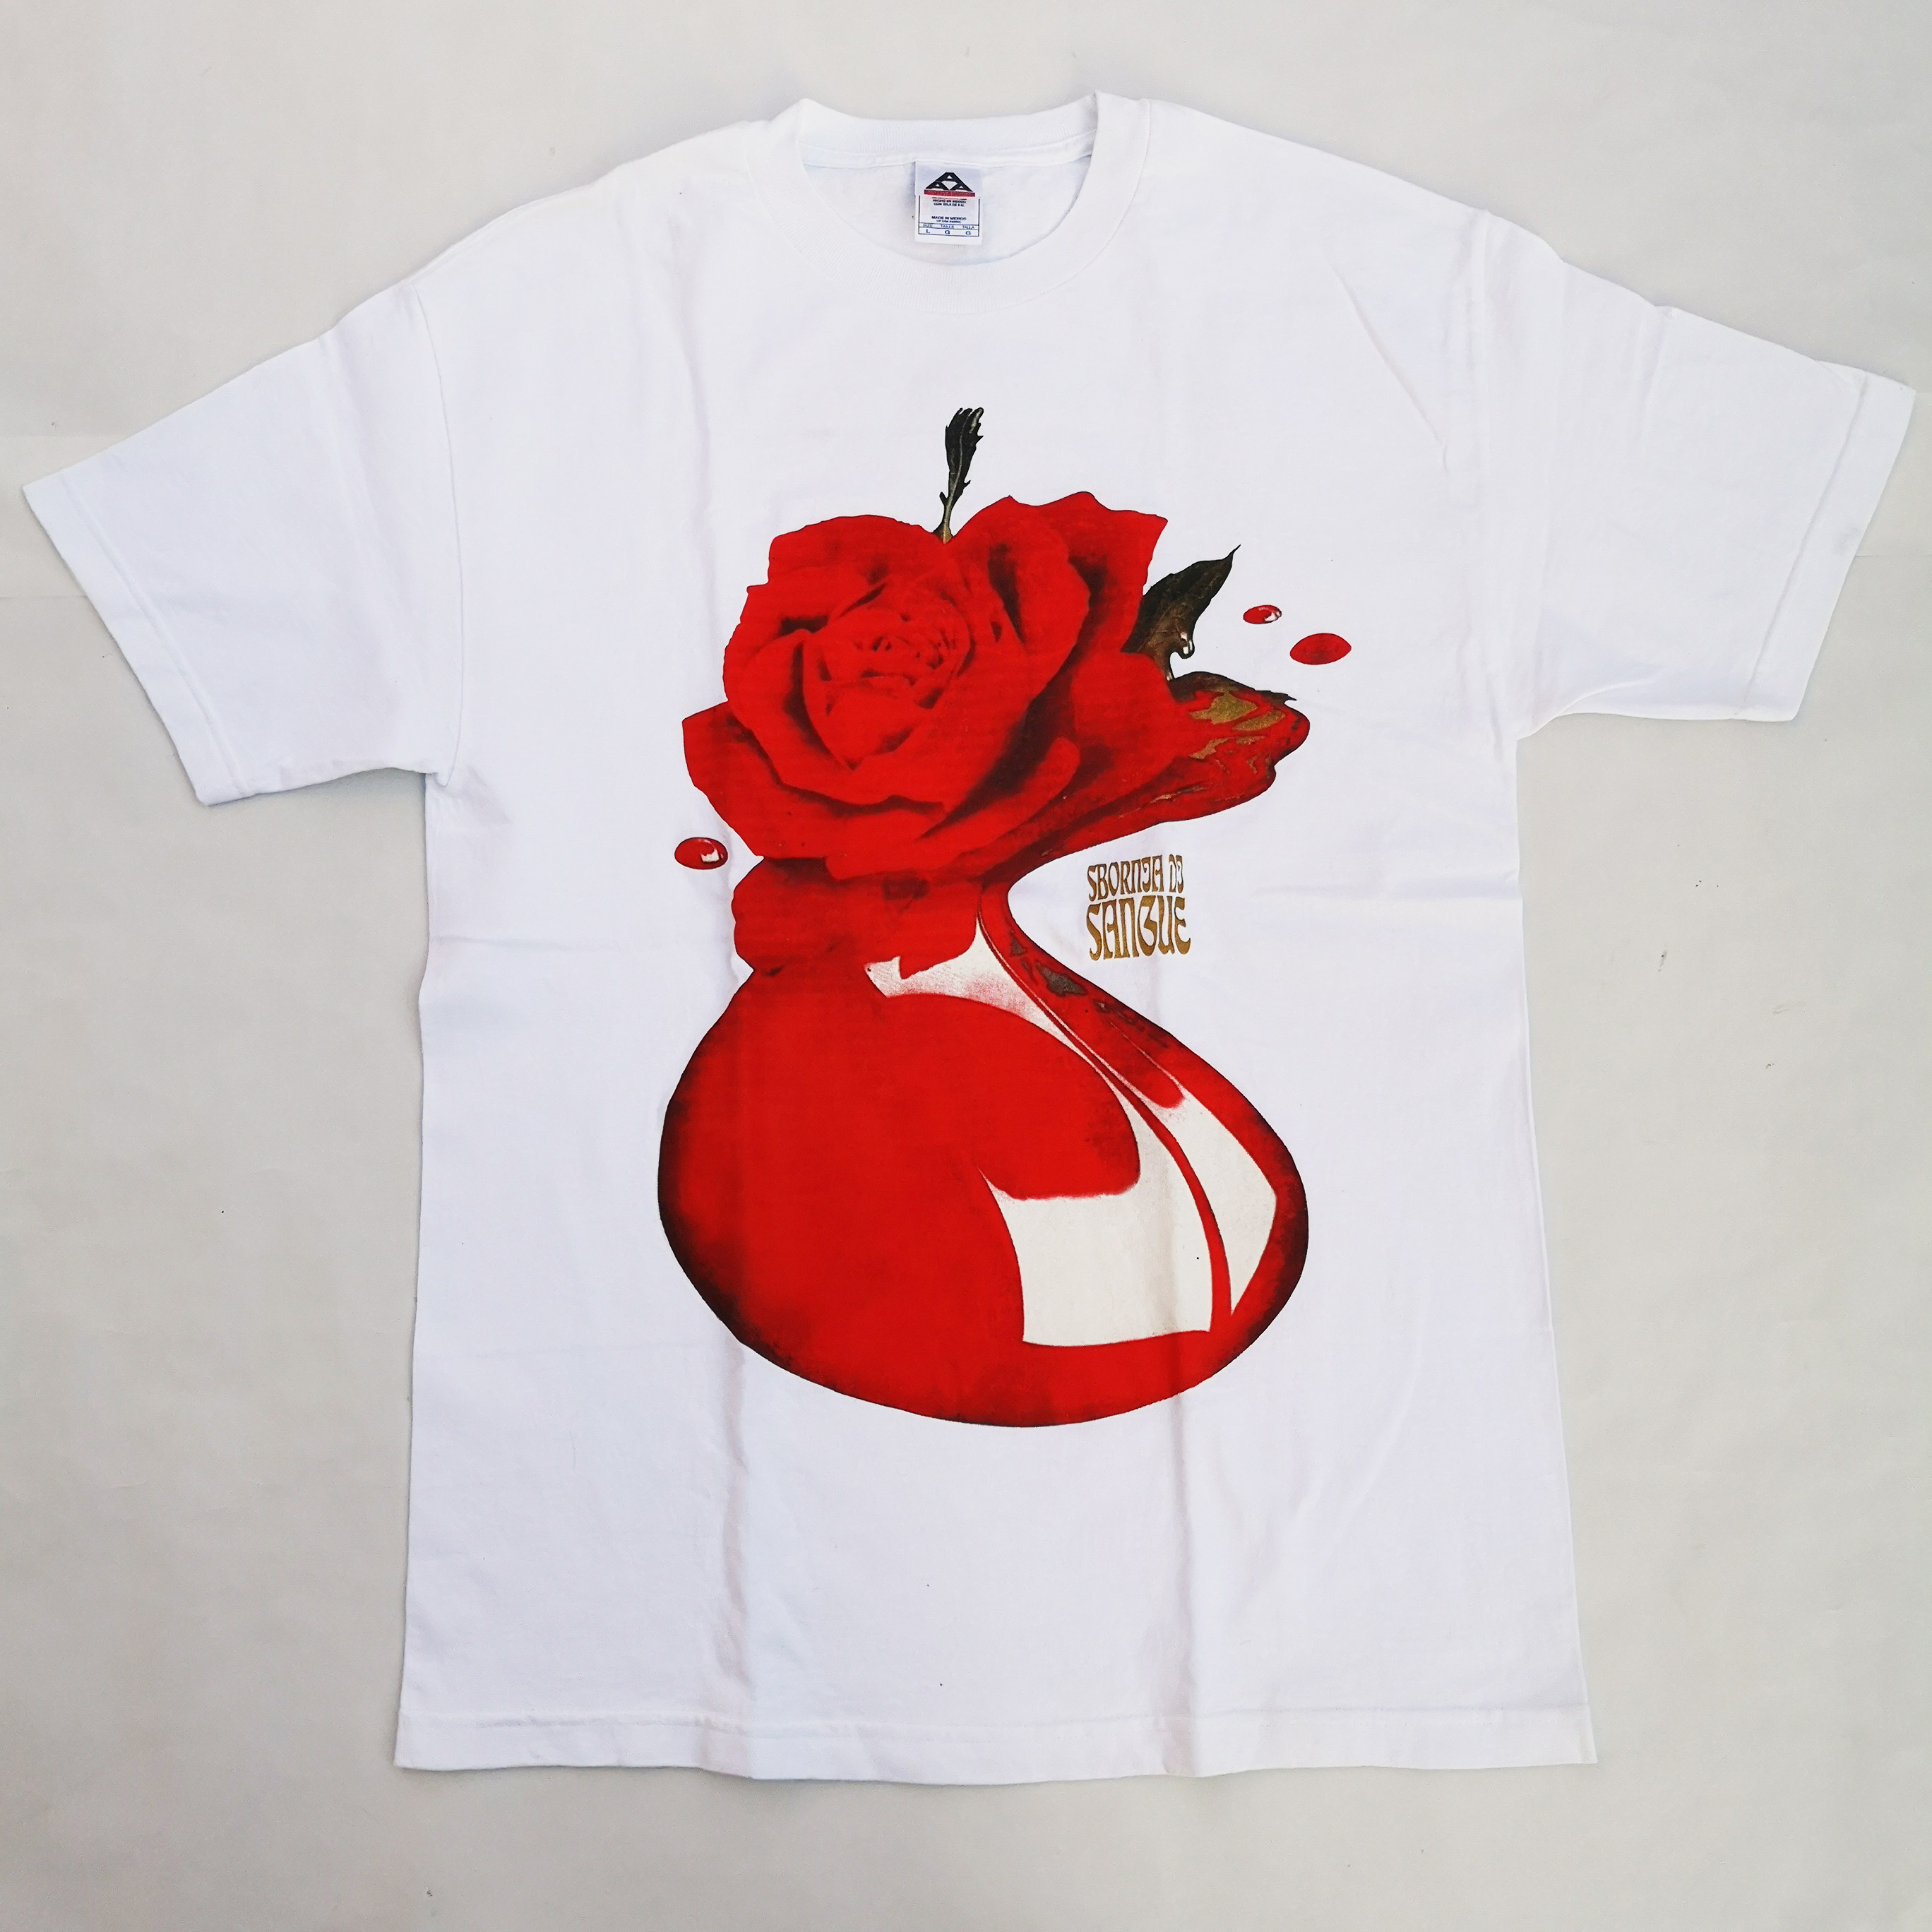 Sbornia Di Sangue TEE Designed by FACE L